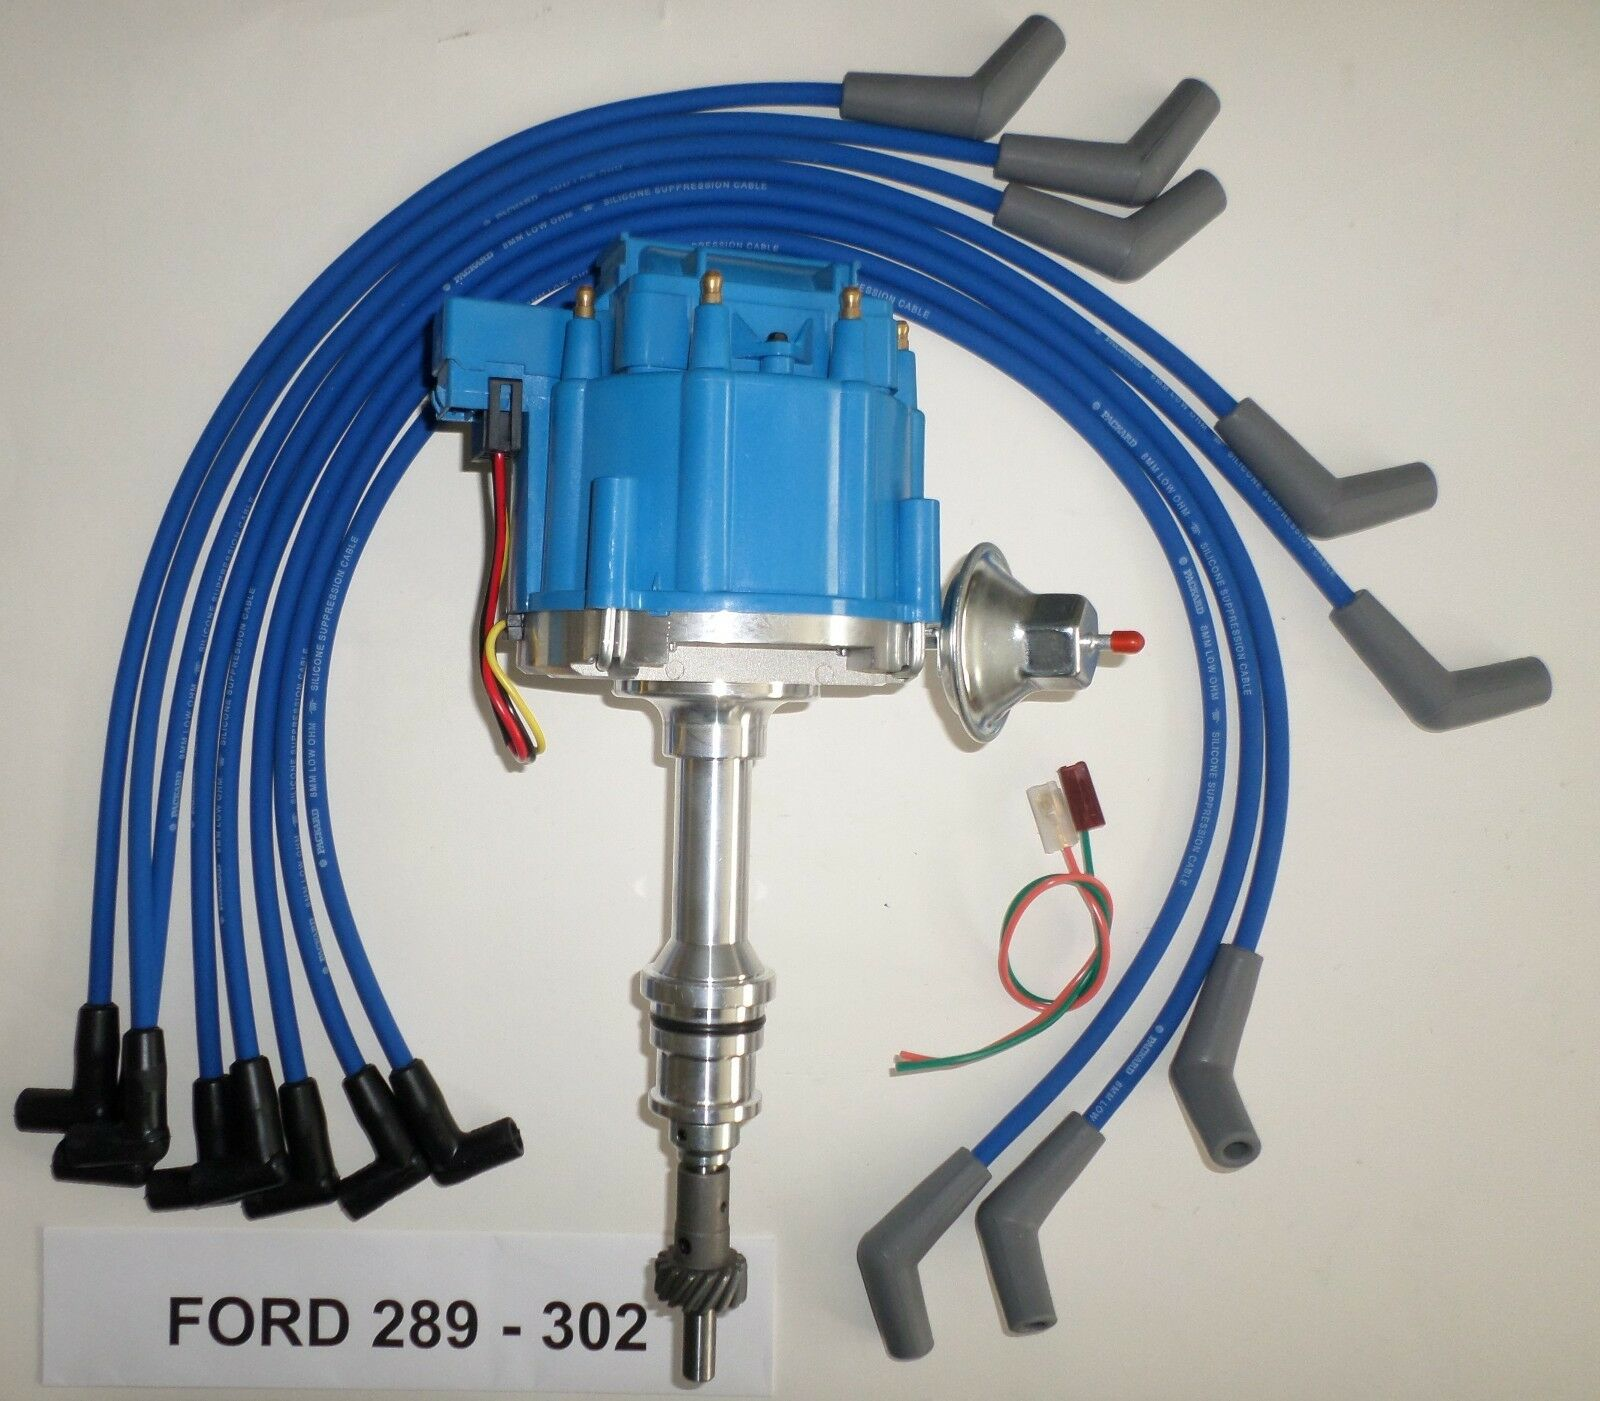 Ford 302 Distributor Wiring Plug Wire House Diagram Symbols Ignition Module On 1979 Engine Small Block 221 260 289 Blue Hei 8mm Spark Rh Picclick Com 351